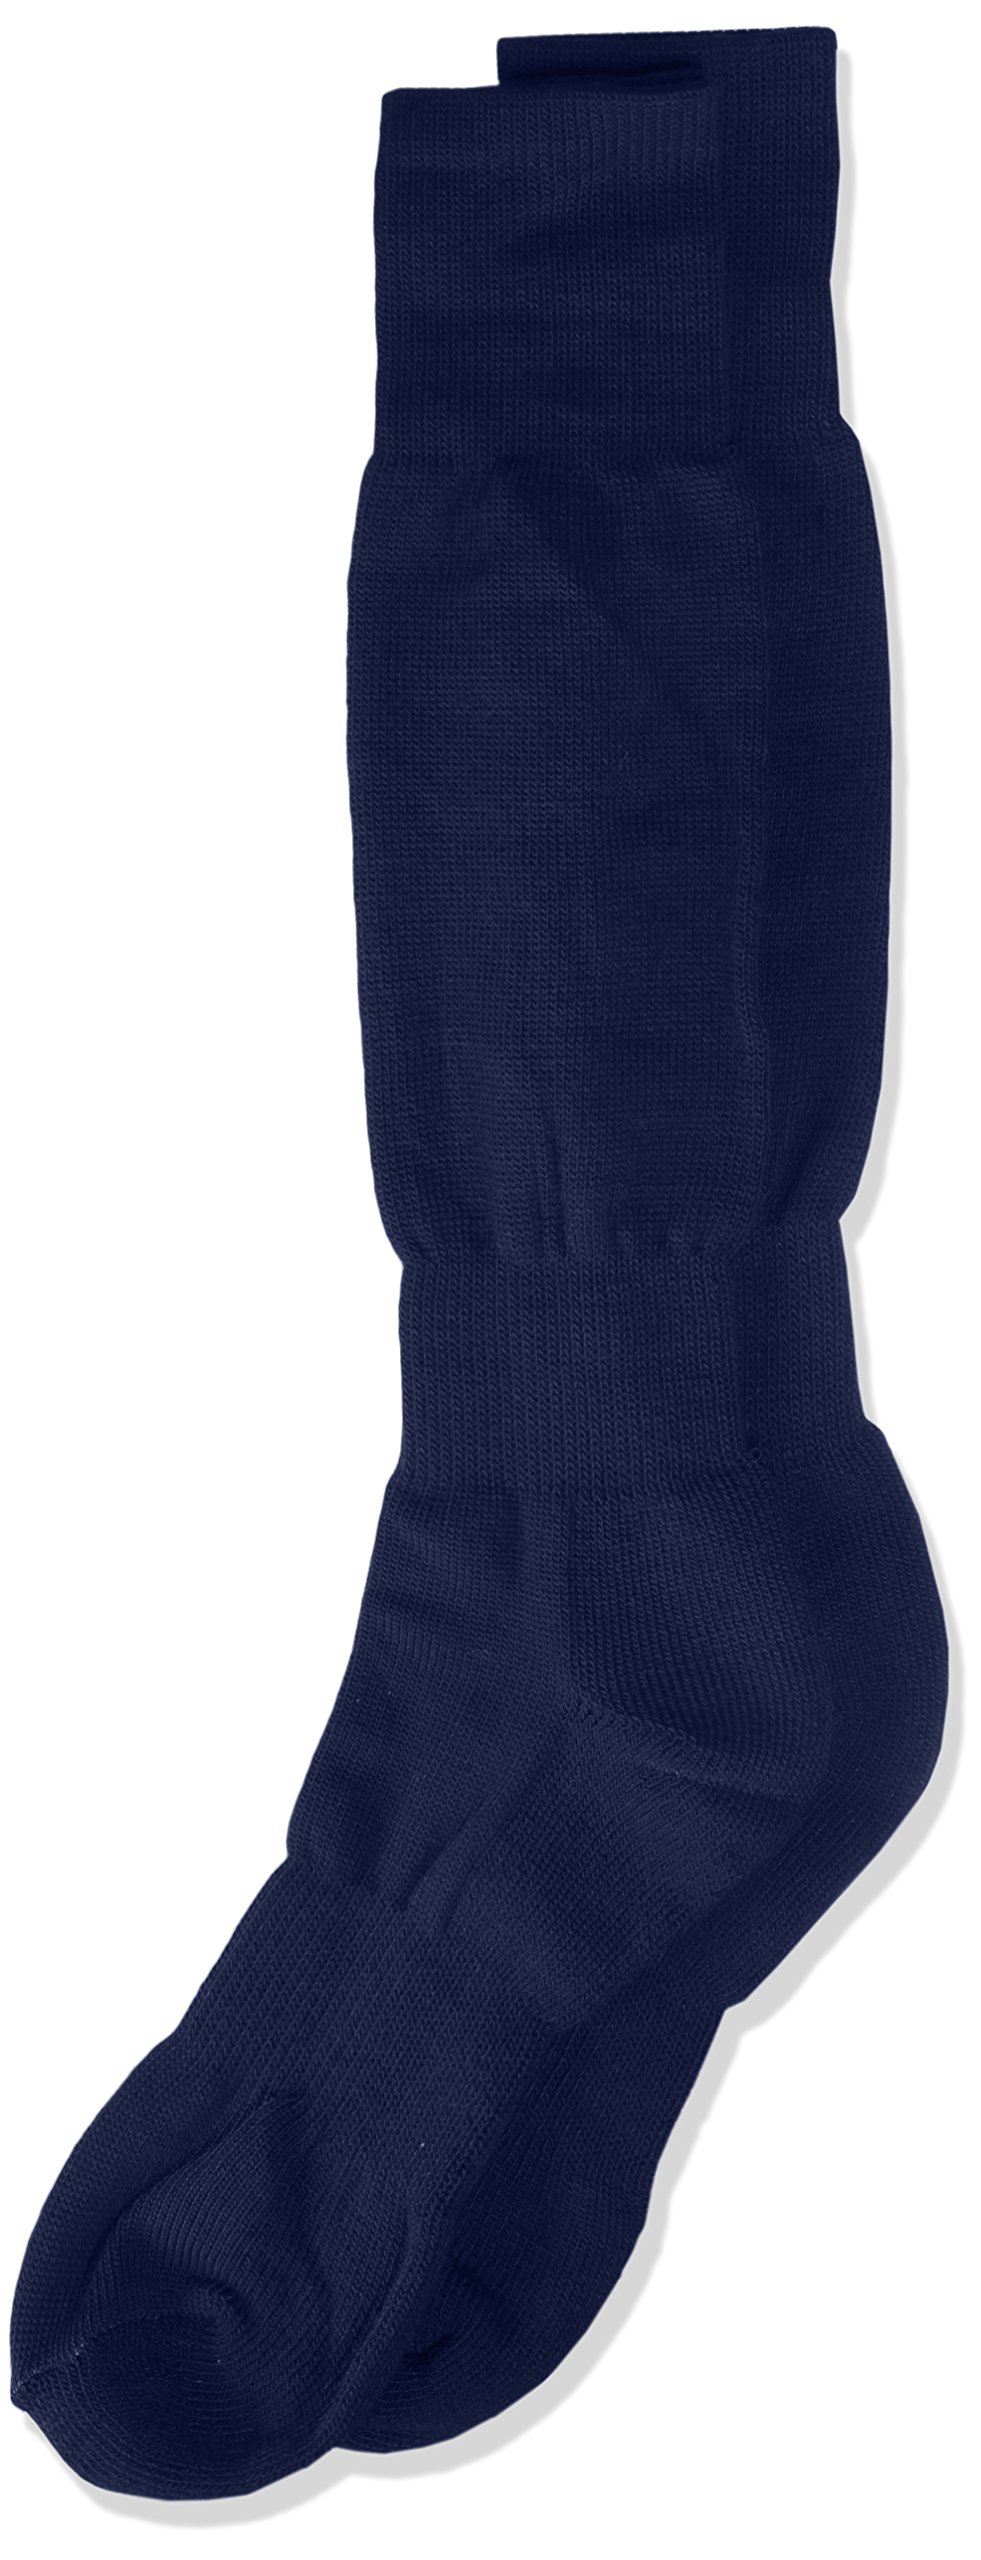 Varsity H/T Baseball Socks, Navy, Size 10-13 by TCK